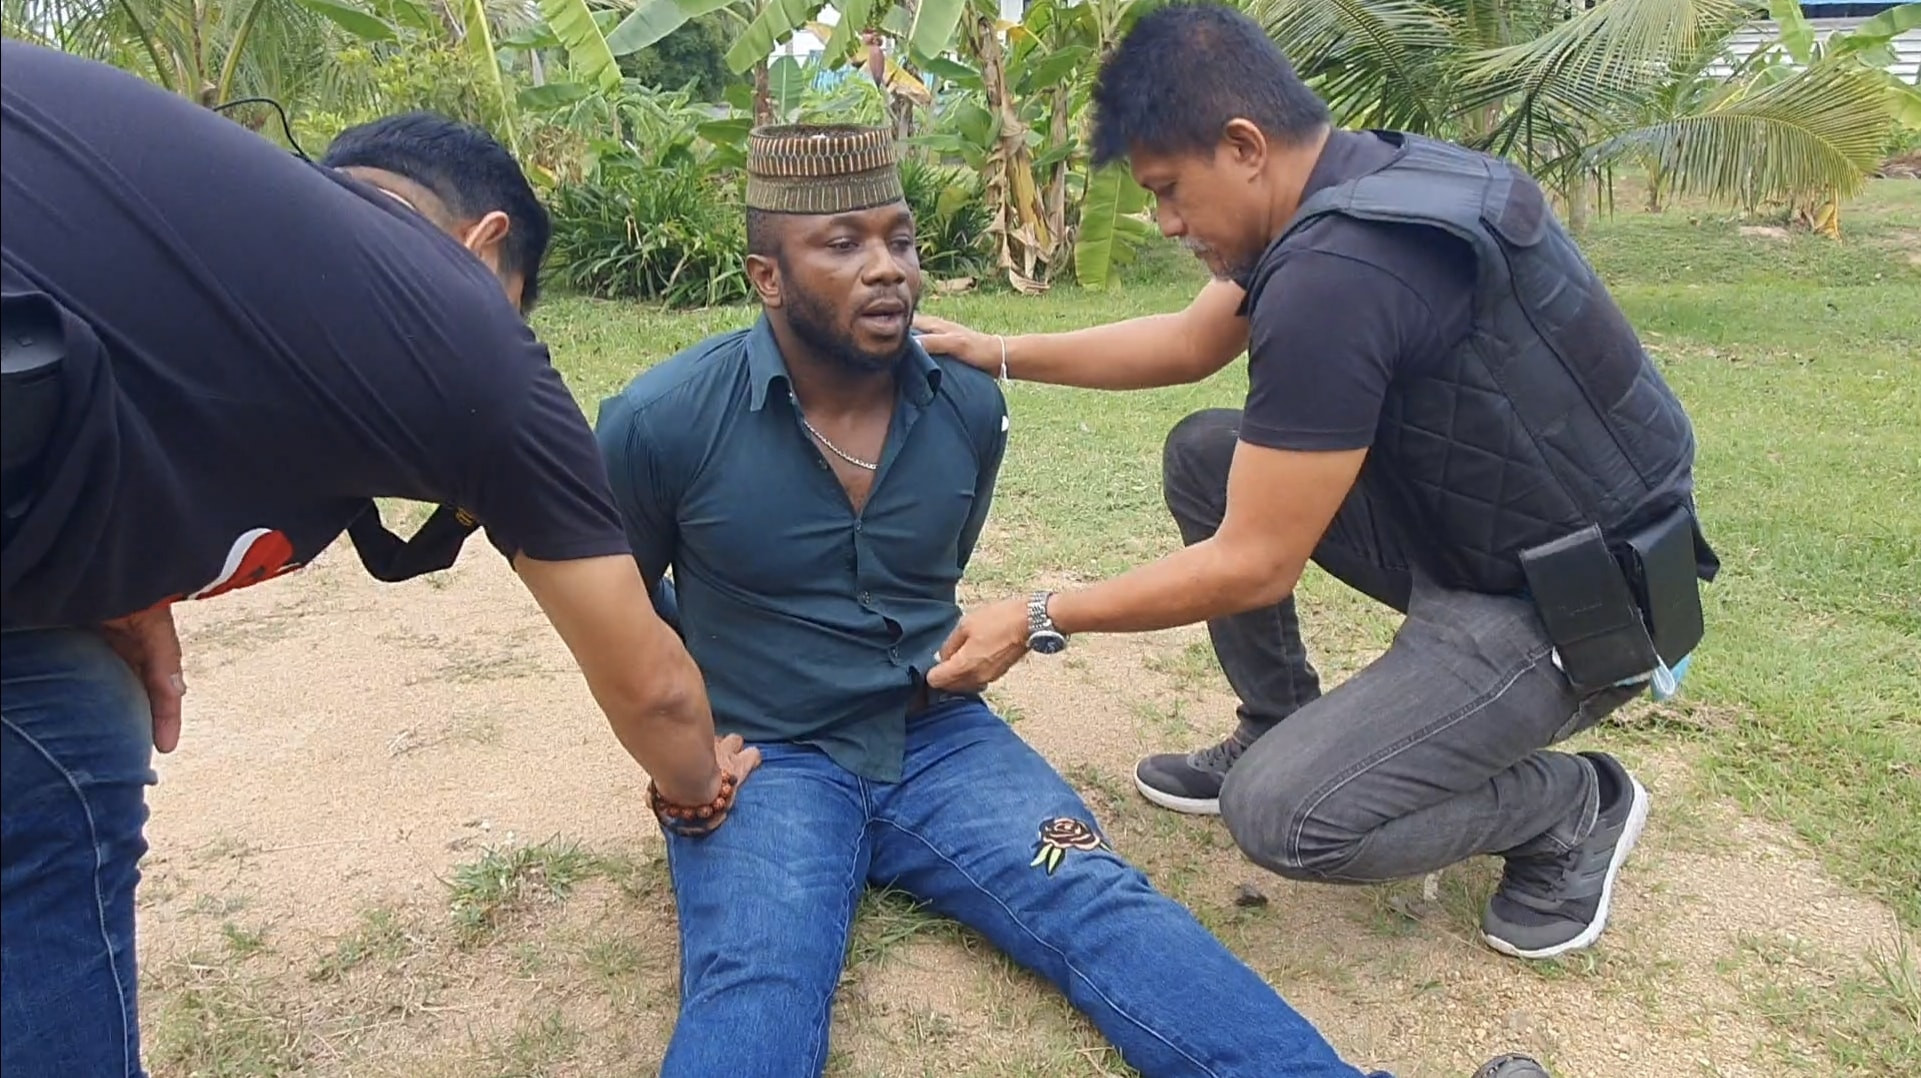 Nigerian Man And His Girlfriend Arrested In Thailand For Allegedly Peddling Cocaine [Photos] 2